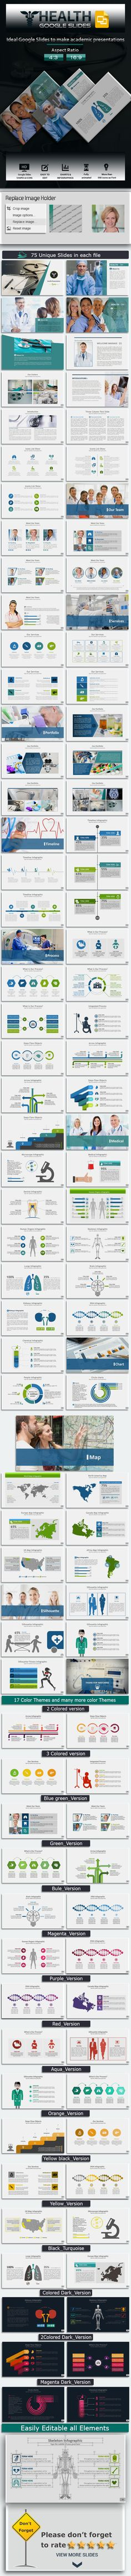 Health #Google #Slides Template - Google Slides Presentation #Templates Download here:  https://graphicriver.net/item/health-google-slides-template/13049624?ref=alena994